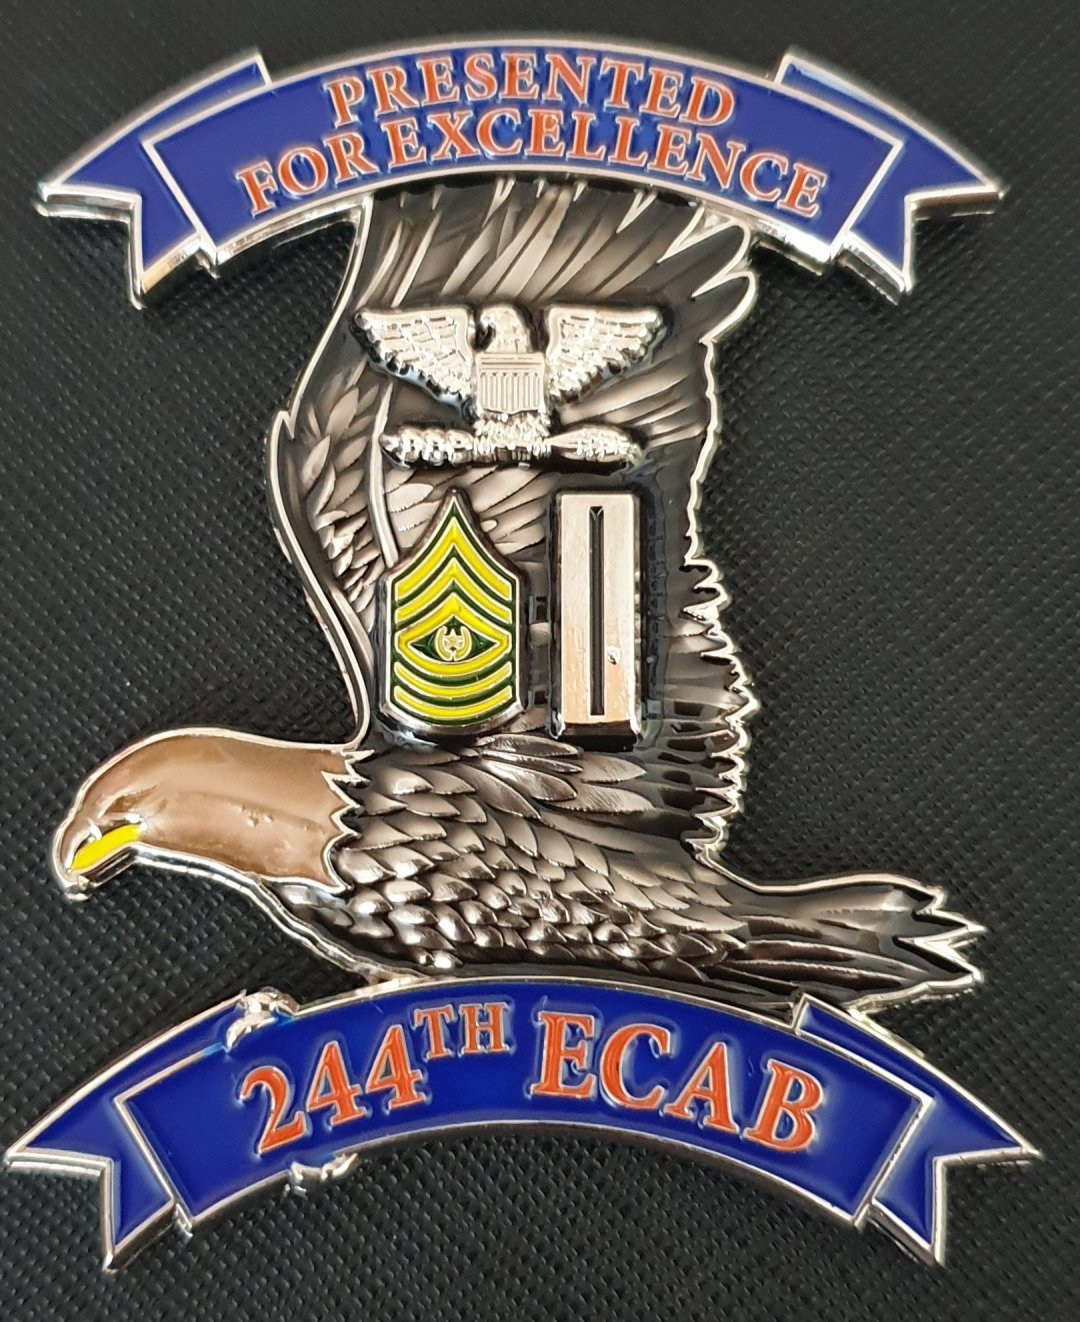 US Army TF WARHAWK 244th ECAB 244th Expeditionary Combat Aviation Brigade OIR 2019 Deployment Command Team Coin backside